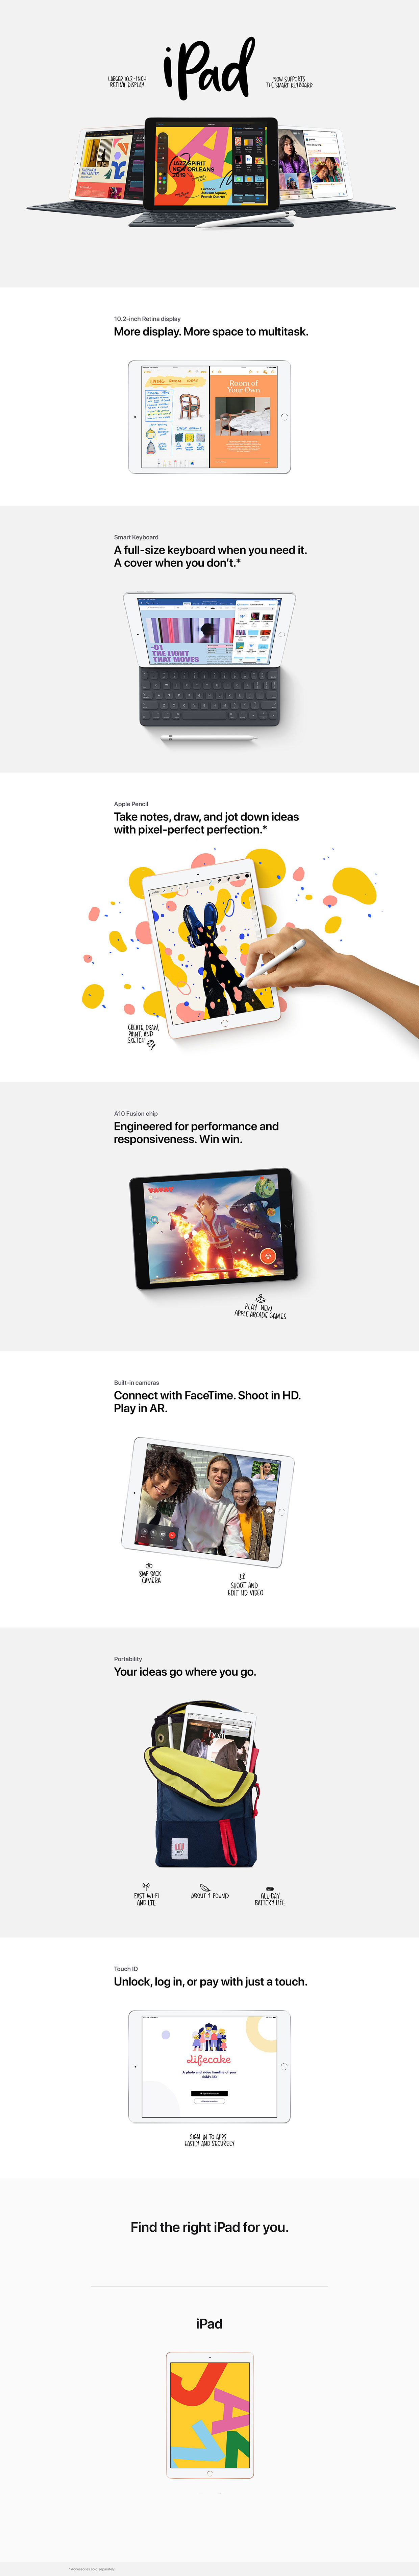 iPad Product Overview Page